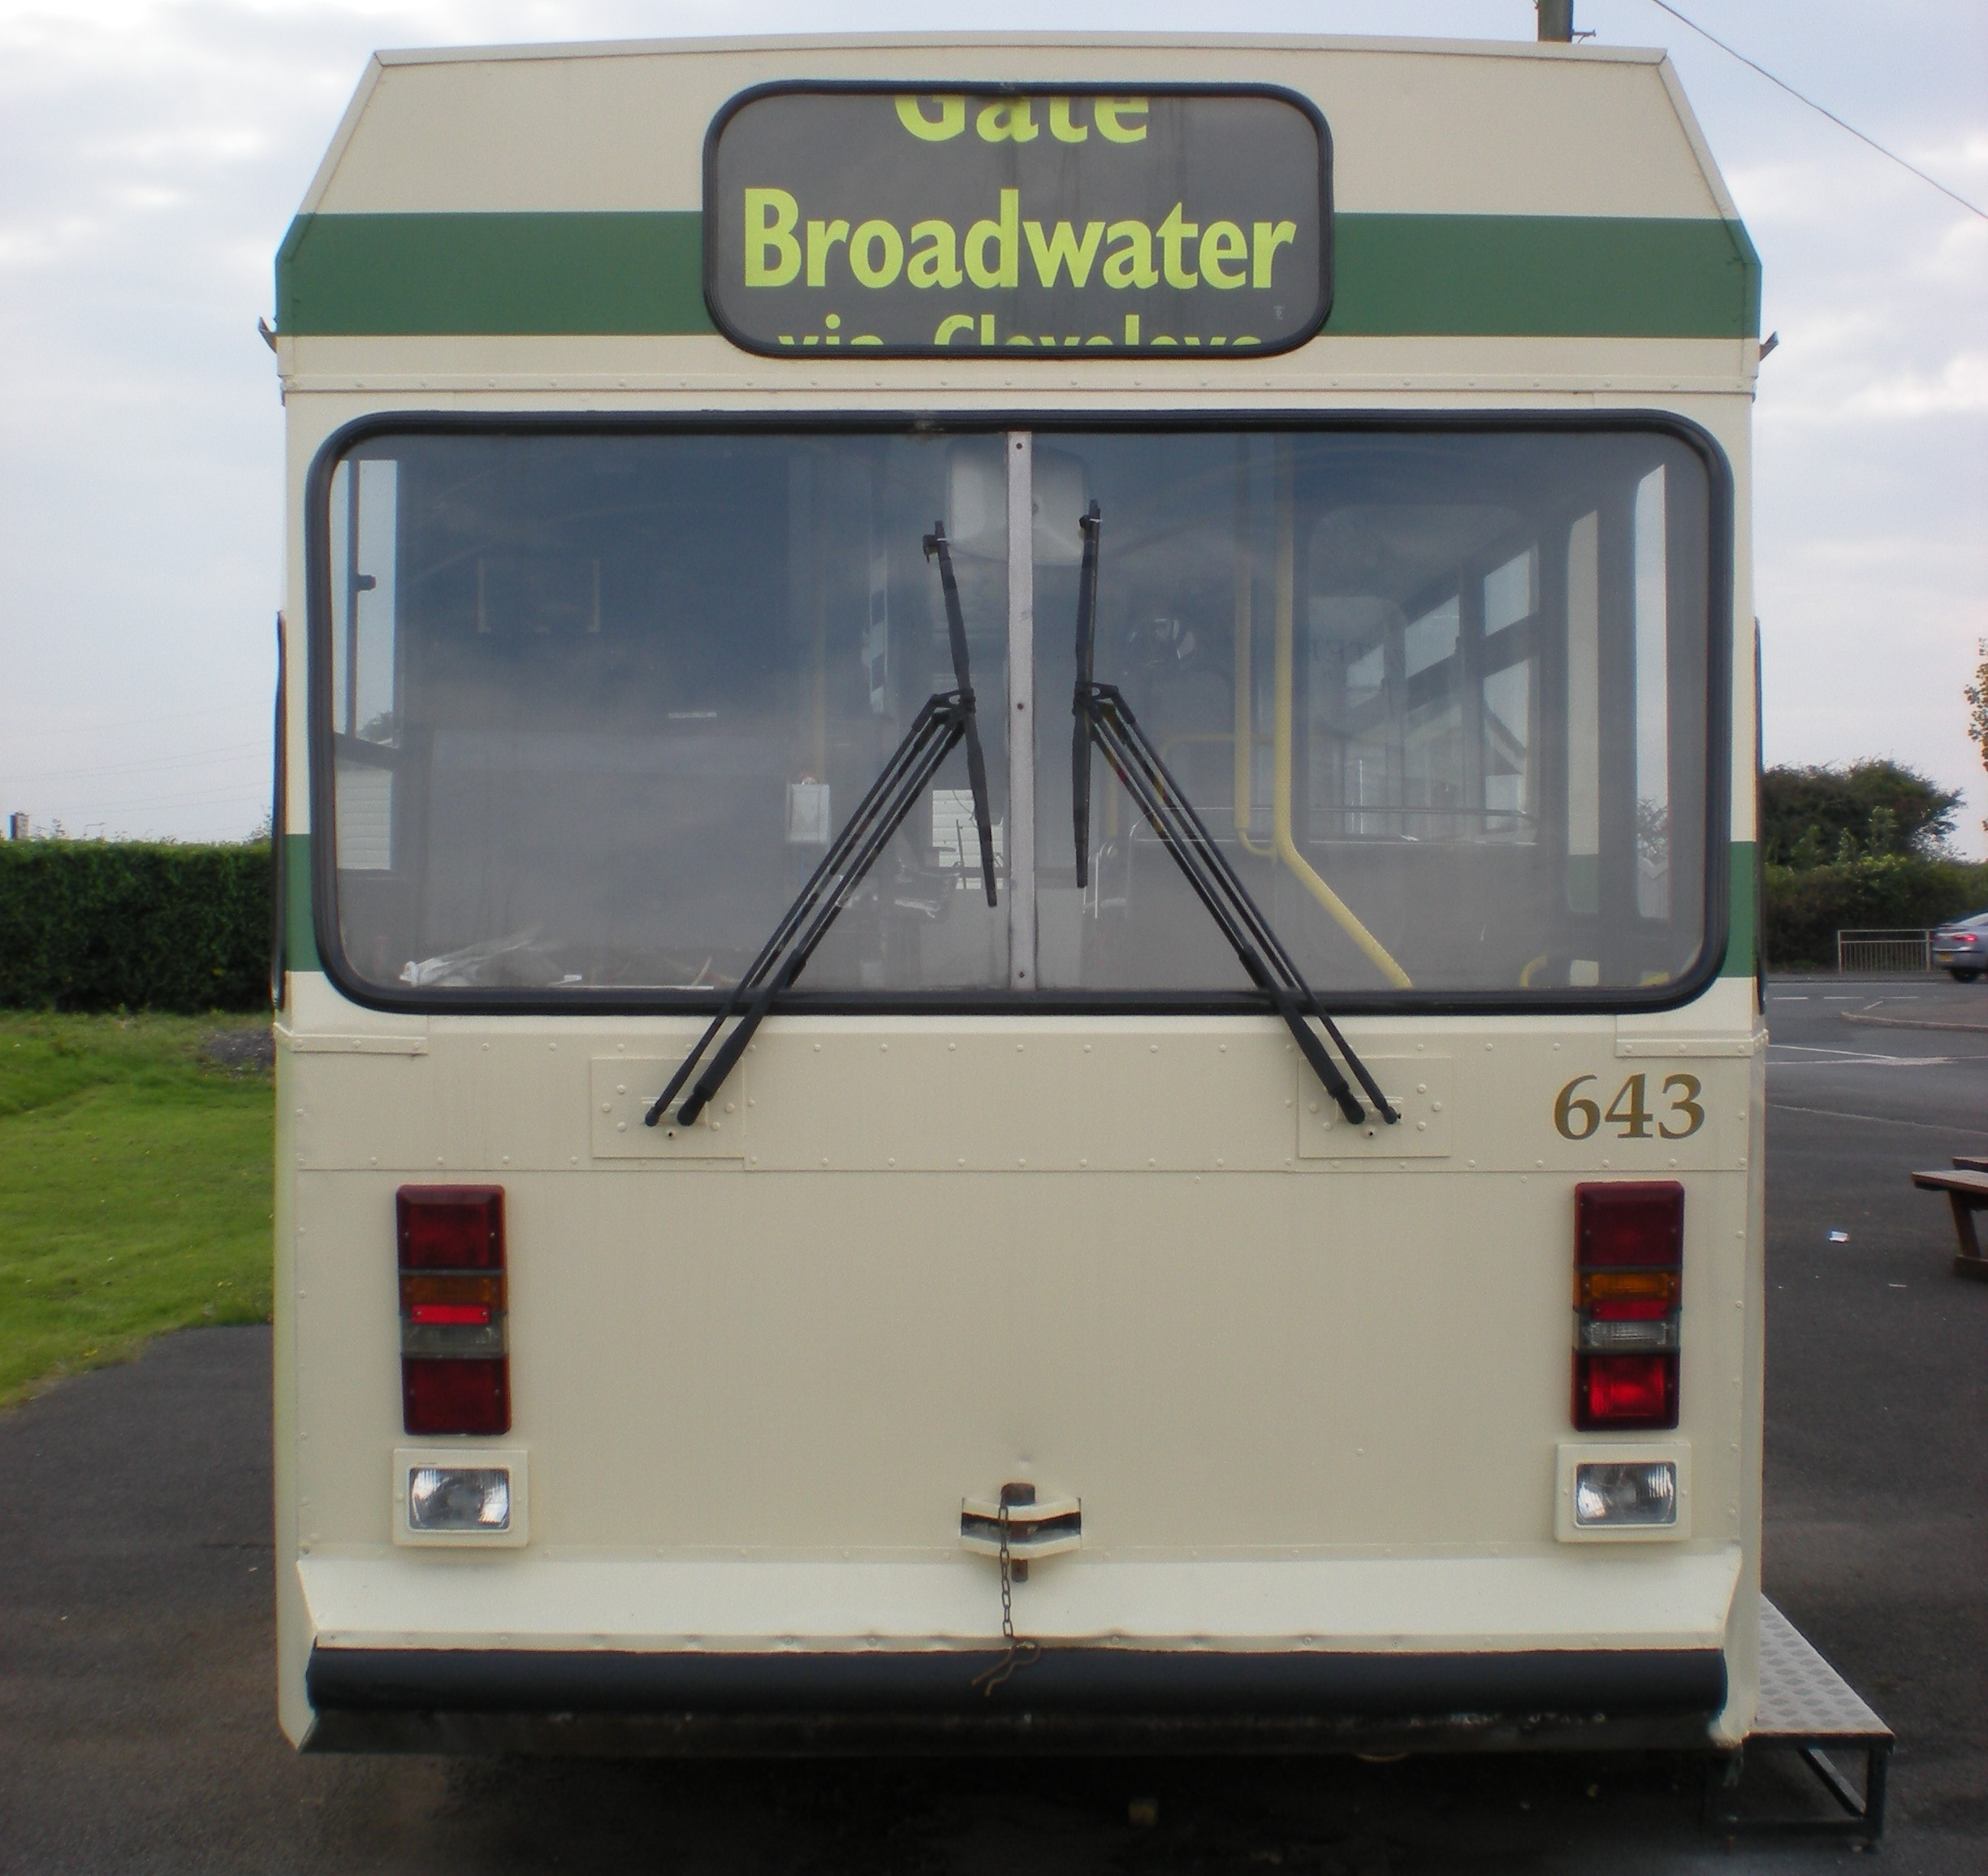 643 INSTALLED AT THE BROADWATER PARK